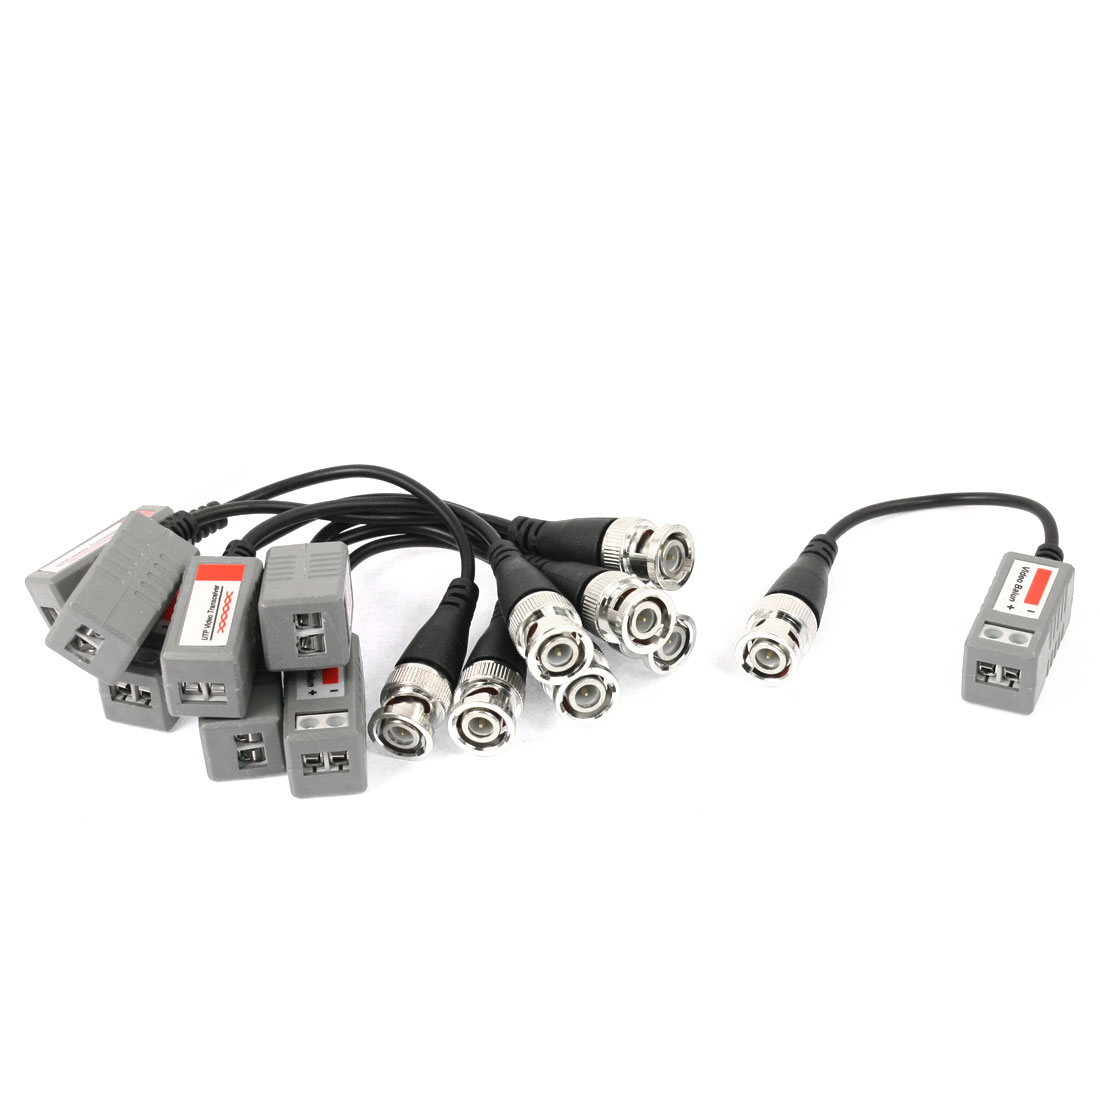 4Pairs BNC Male CCTV Camera Via Twisted UTP CAT5 Video Balun Transceiver